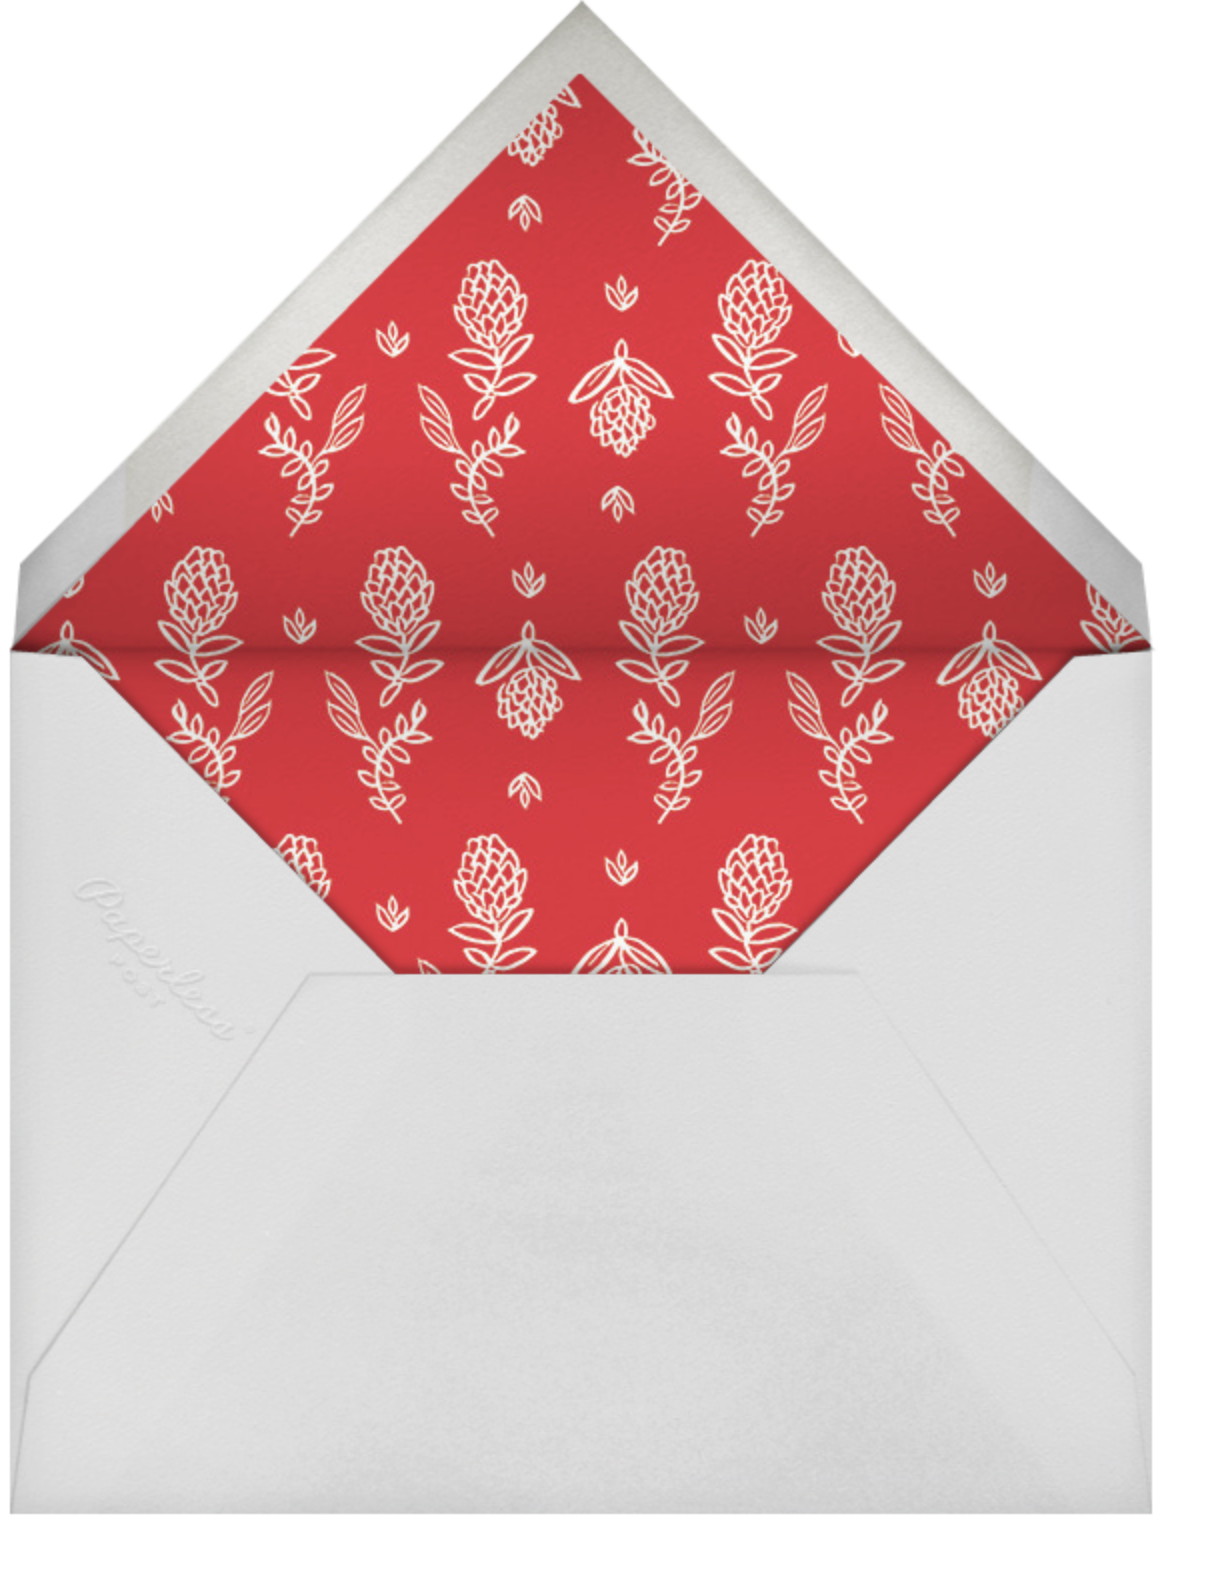 Botanical Lace (Photo) - Gold - Rifle Paper Co. - Christmas - envelope back